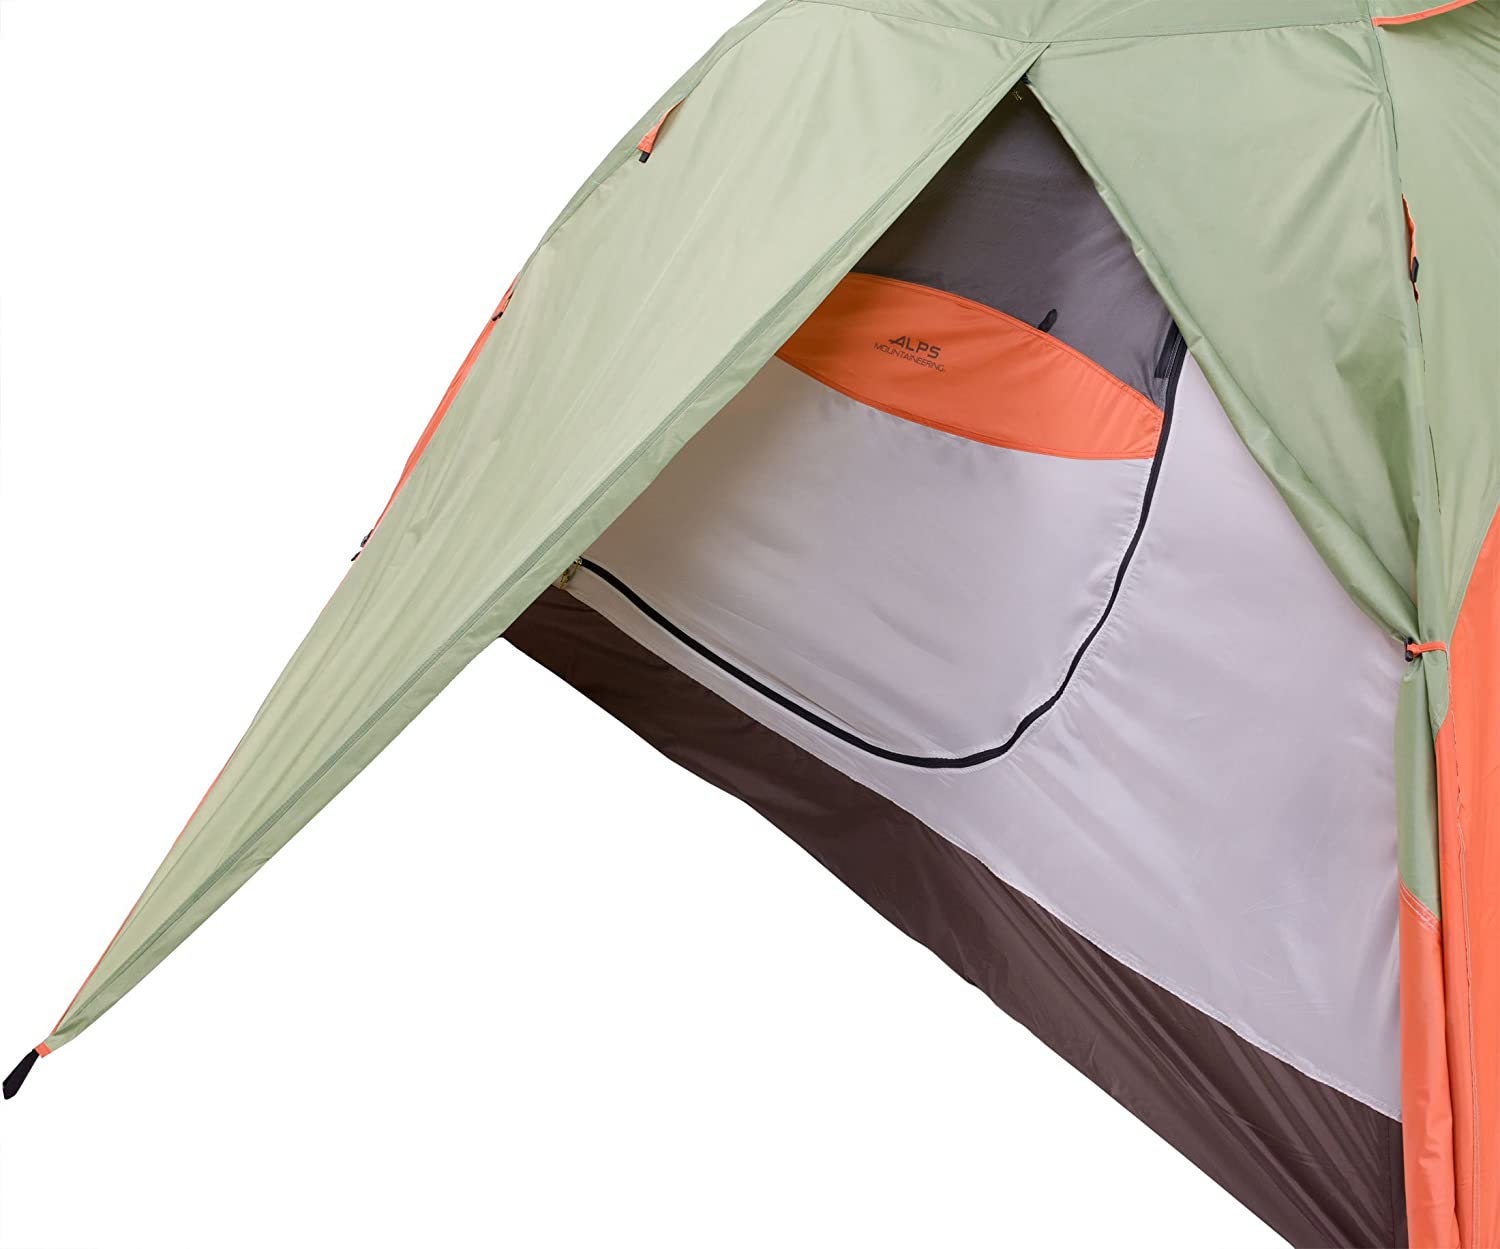 Best Tents With Vestibules For Backpacking & Camping | Sleeping With Air